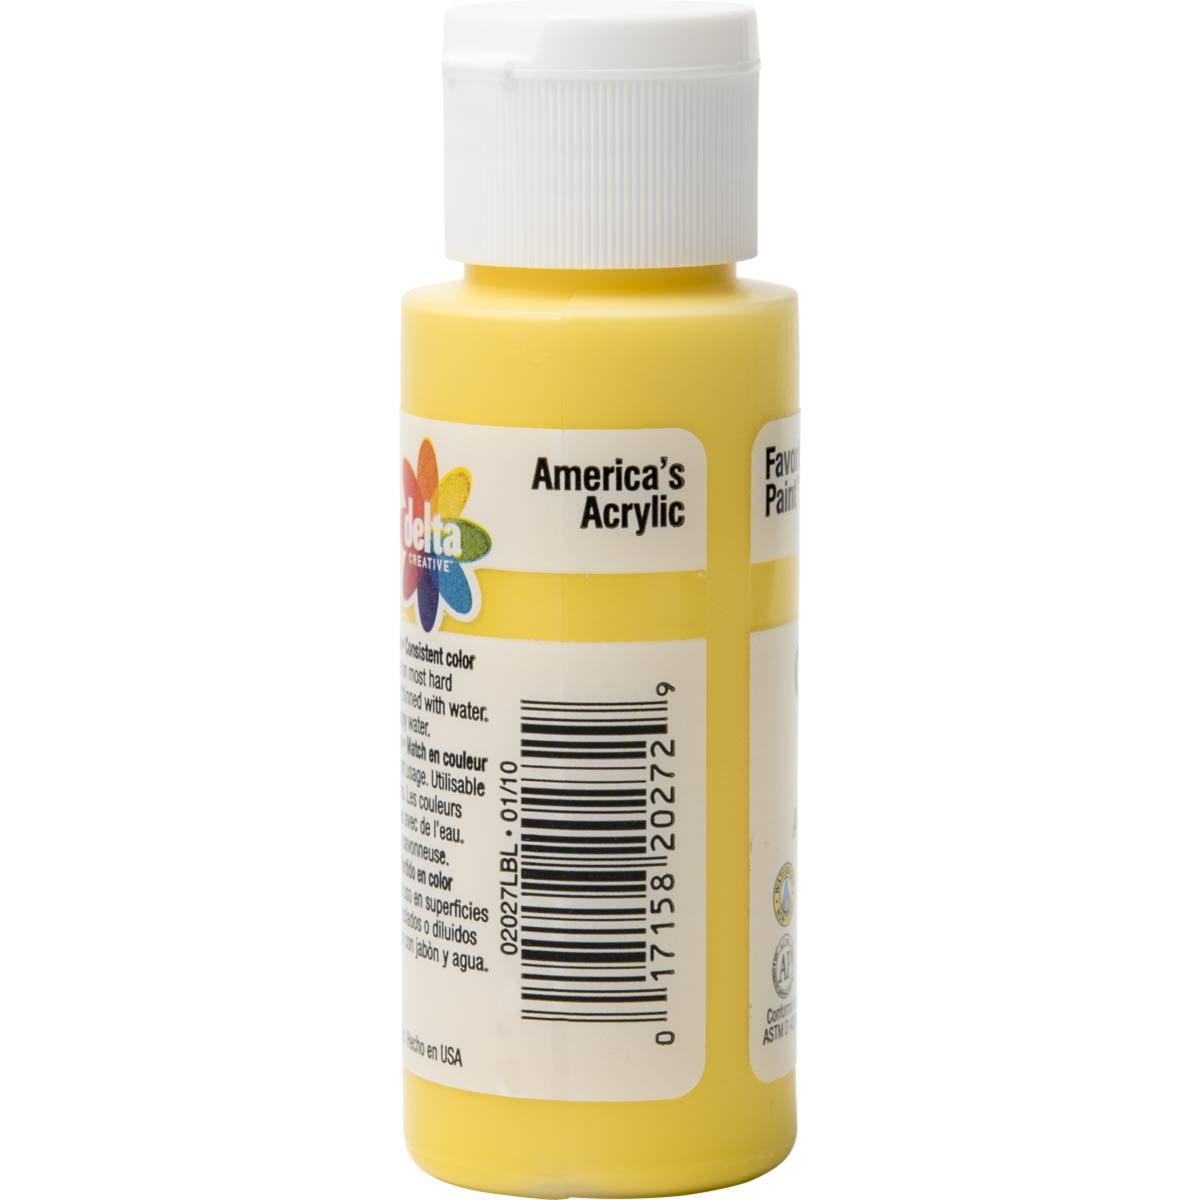 Delta Ceramcoat ® Acrylic Paint - Bright Yellow, 2 oz. - 020270202W